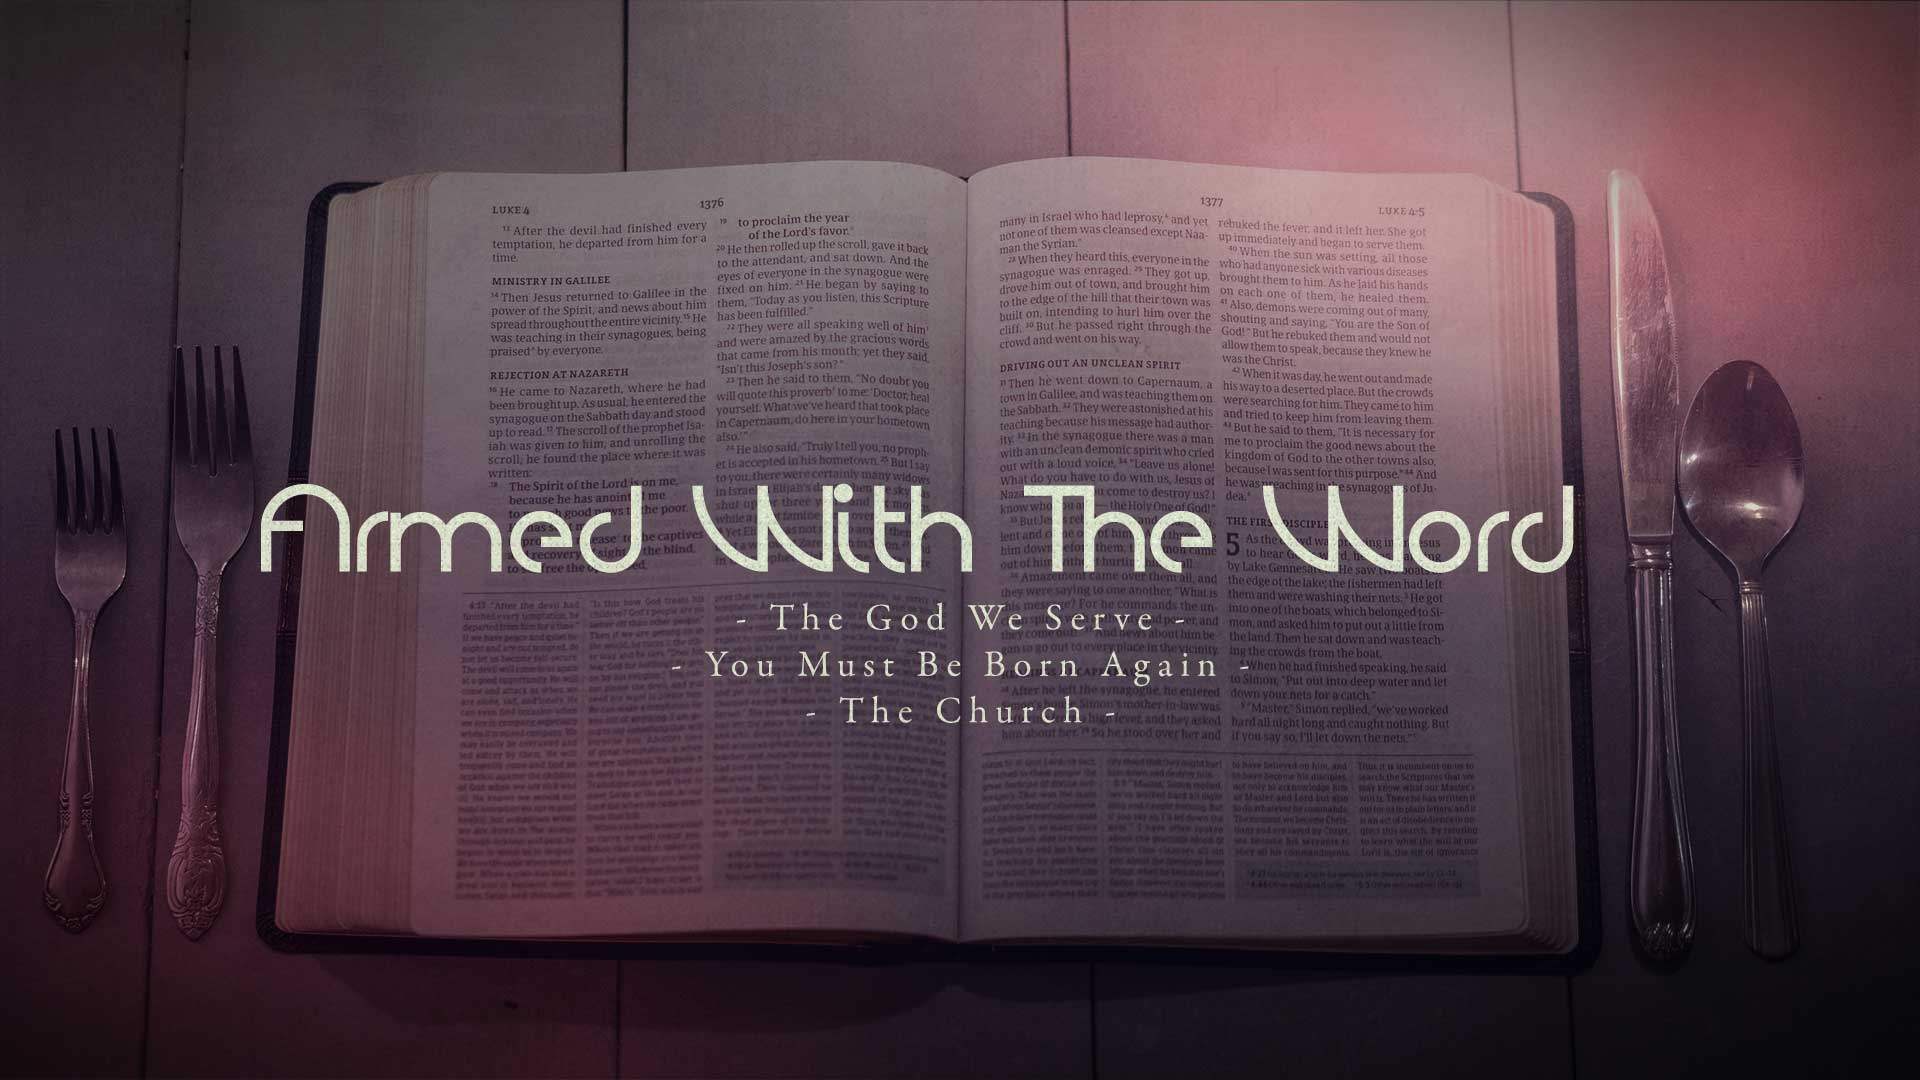 Armed with the word